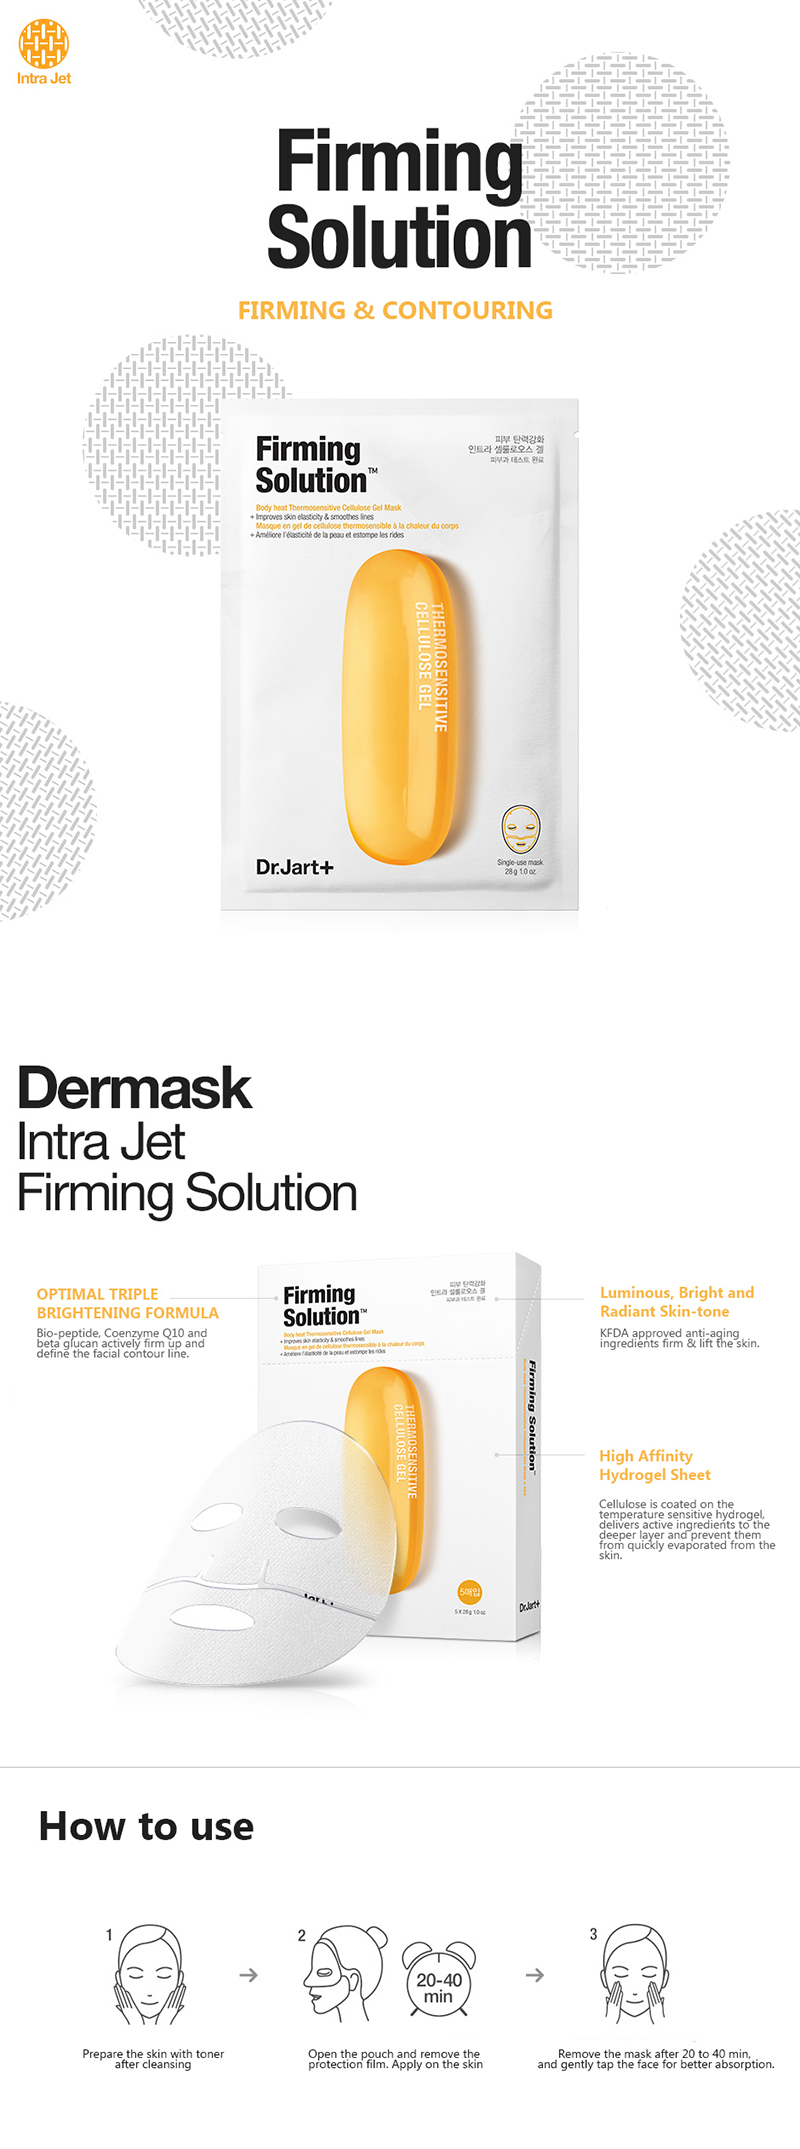 dermask-fiming-solution.jpg